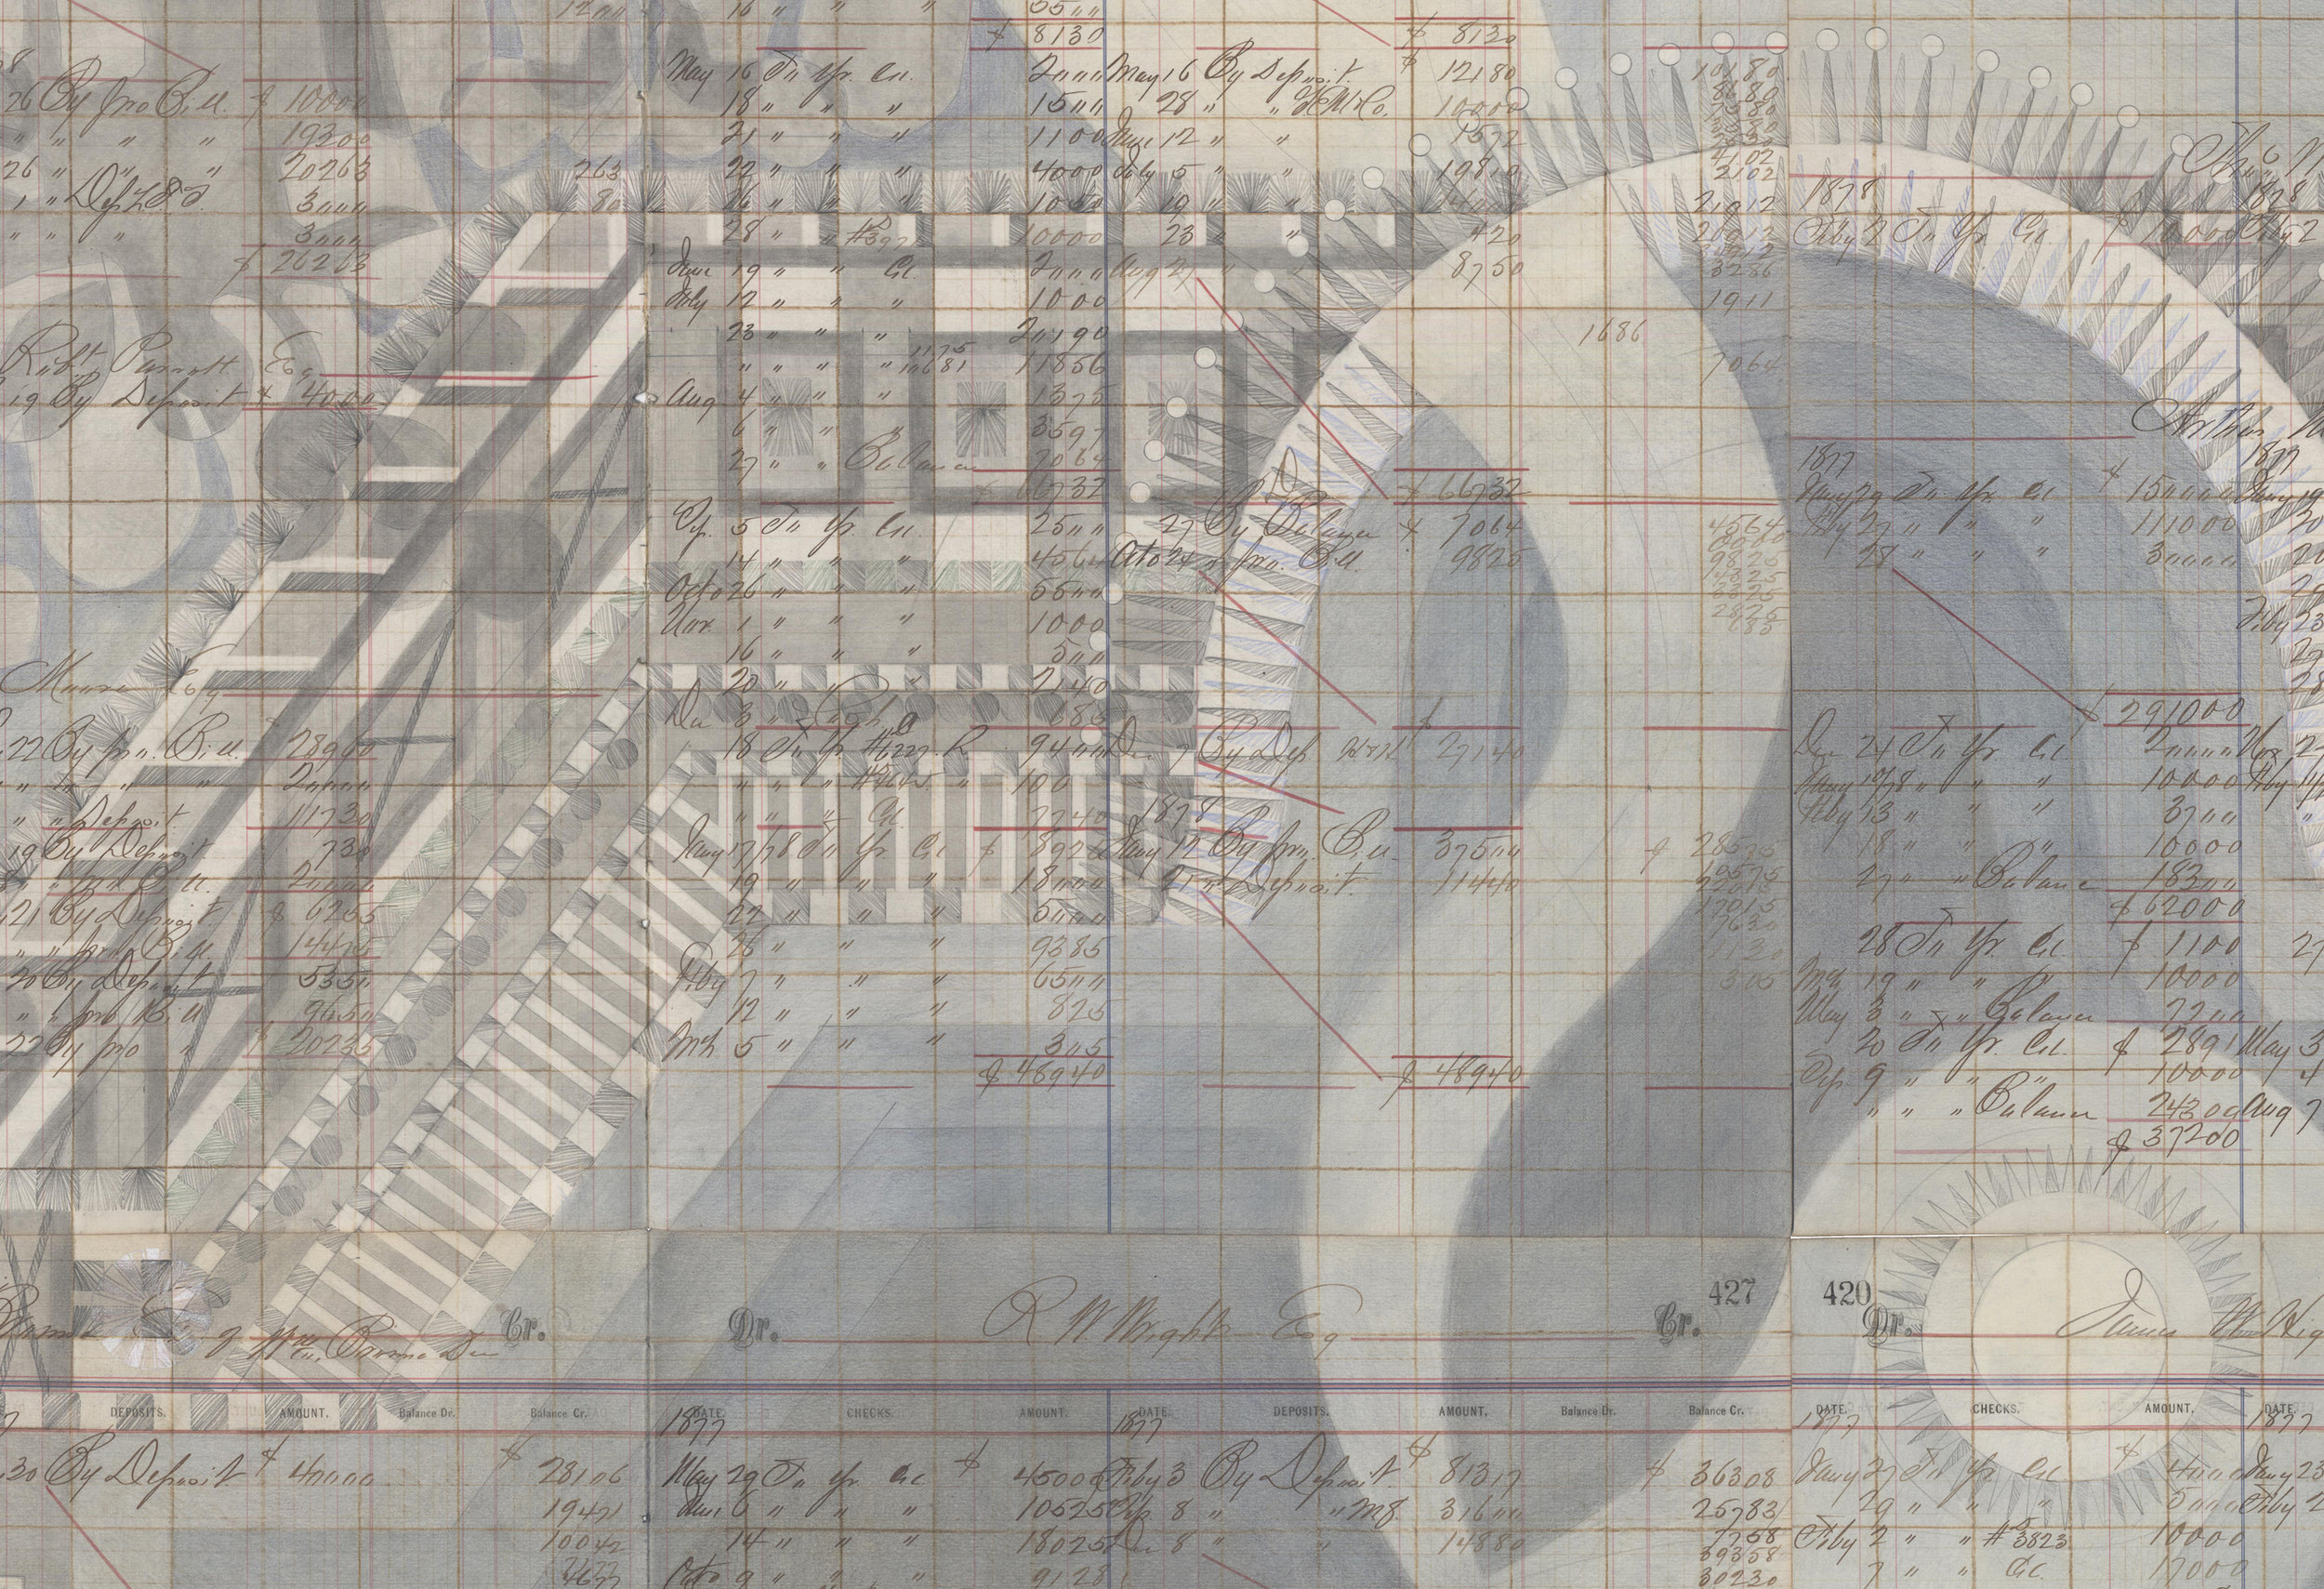 DETAIL of Water Temple,Colored Pencil and Graphite on Antique Ledger Book Pages. 55.5 x 47 inches